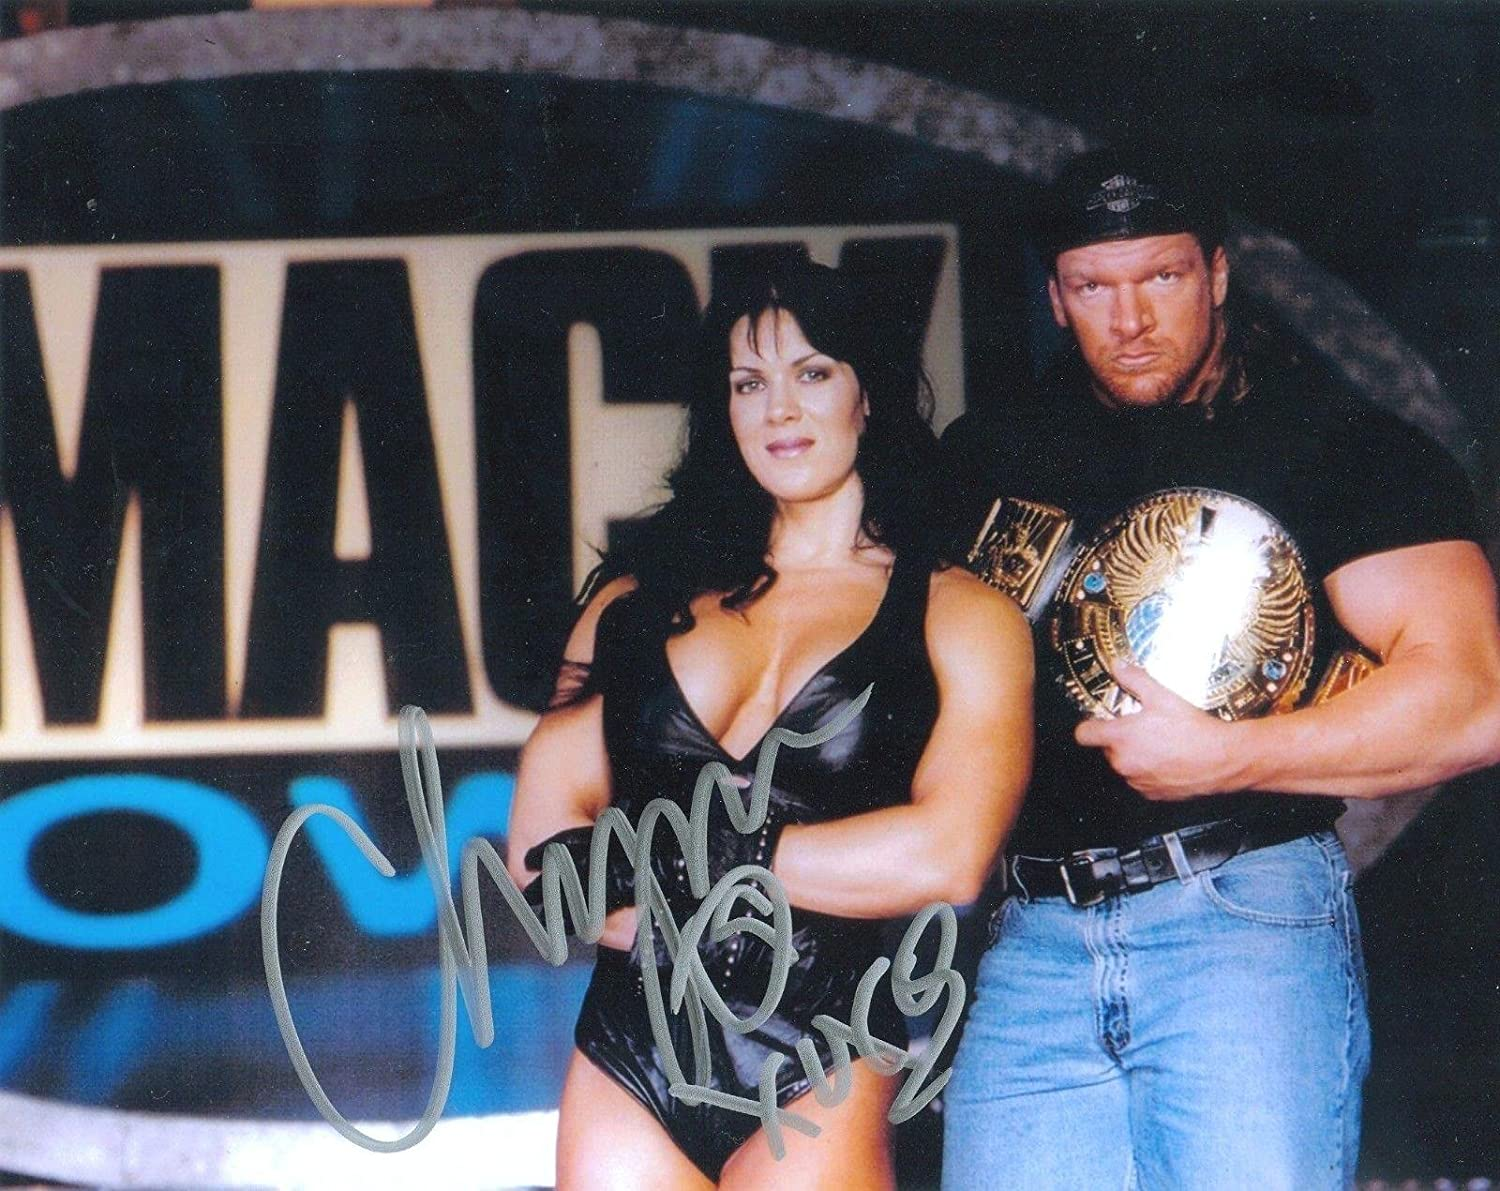 Chyna Wwe Wwf Signed Autograph 8x W Proof Autographed Wrestling Photos At Amazons Sports Collectibles Store